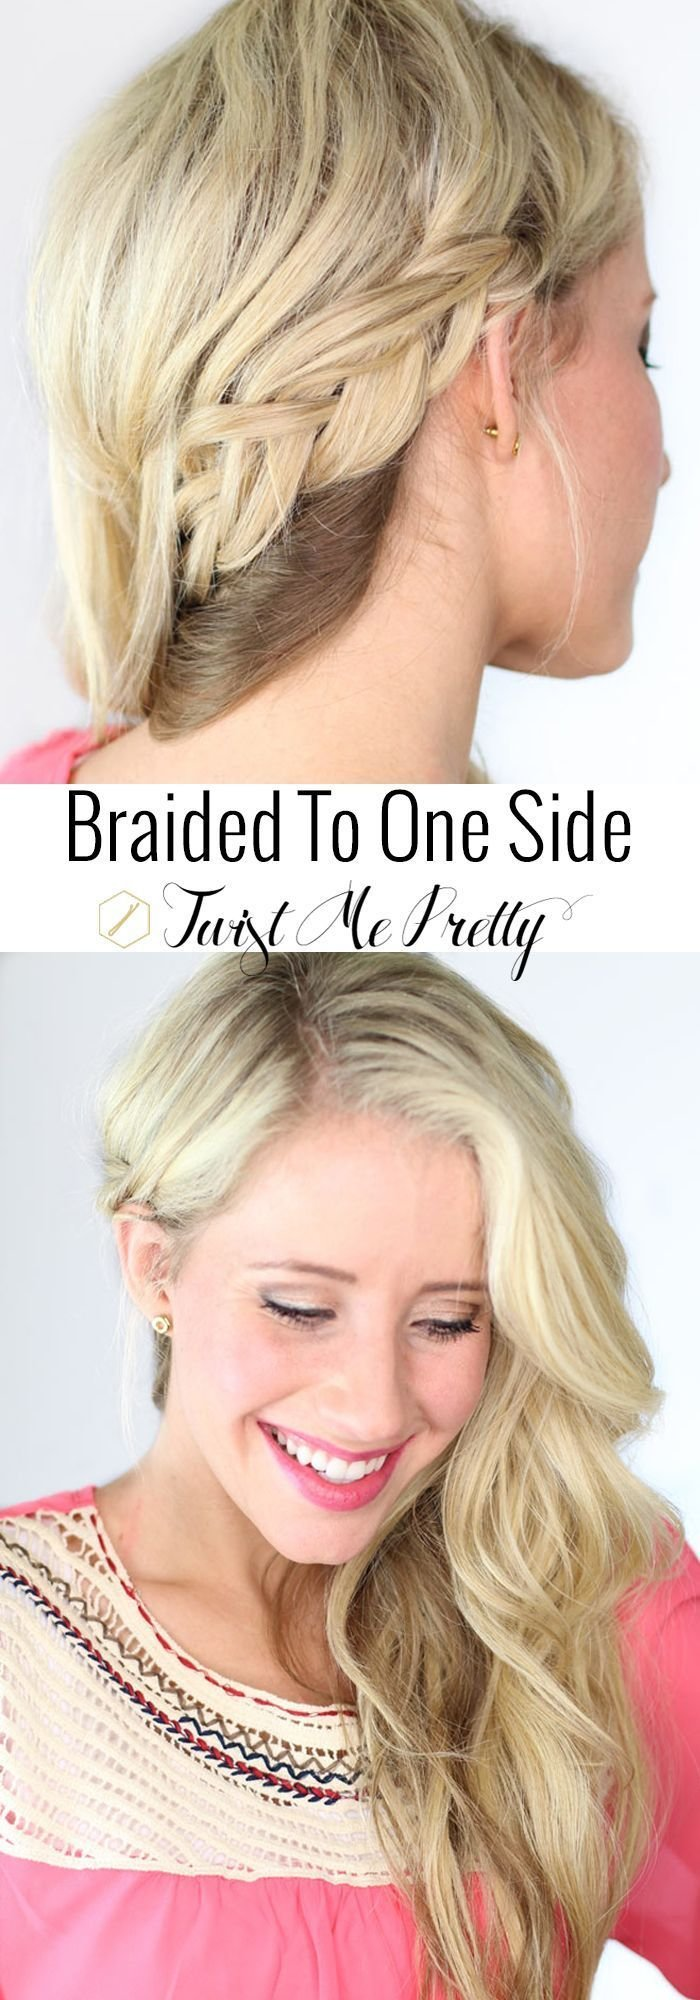 The Best 1000 Ideas About One Sided Braid On Pinterest Hair Styles For Prom Grad Hairstyles And Pictures